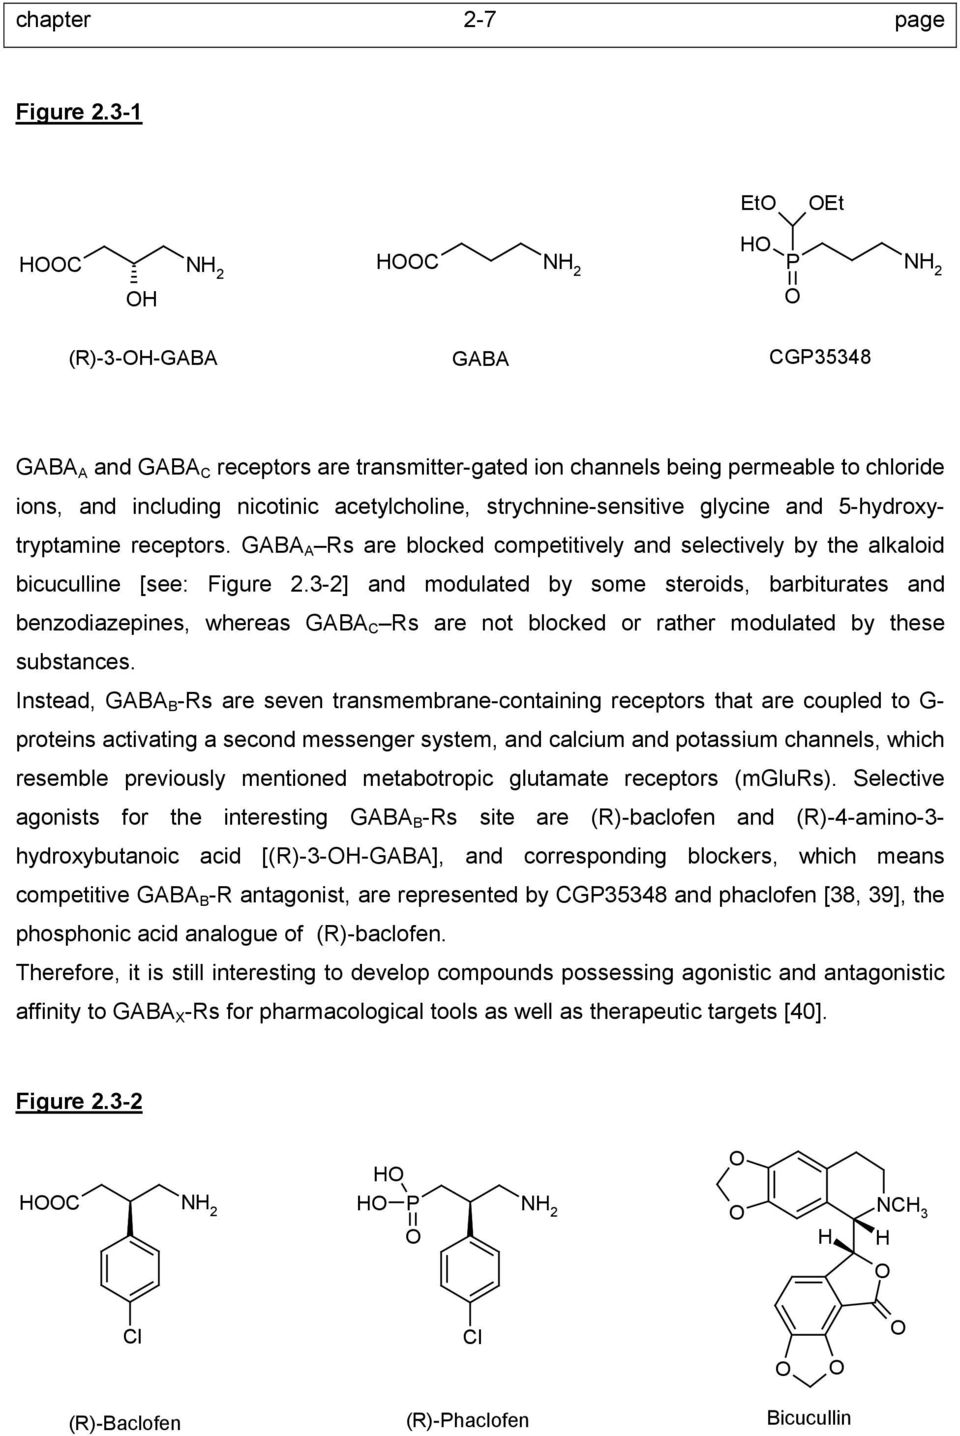 strychnine-sensitive glycine and 5-hydroxytryptamine receptors. GABA A Rs are blocked competitively and selectively by the alkaloid bicuculline [see: Figure 2.